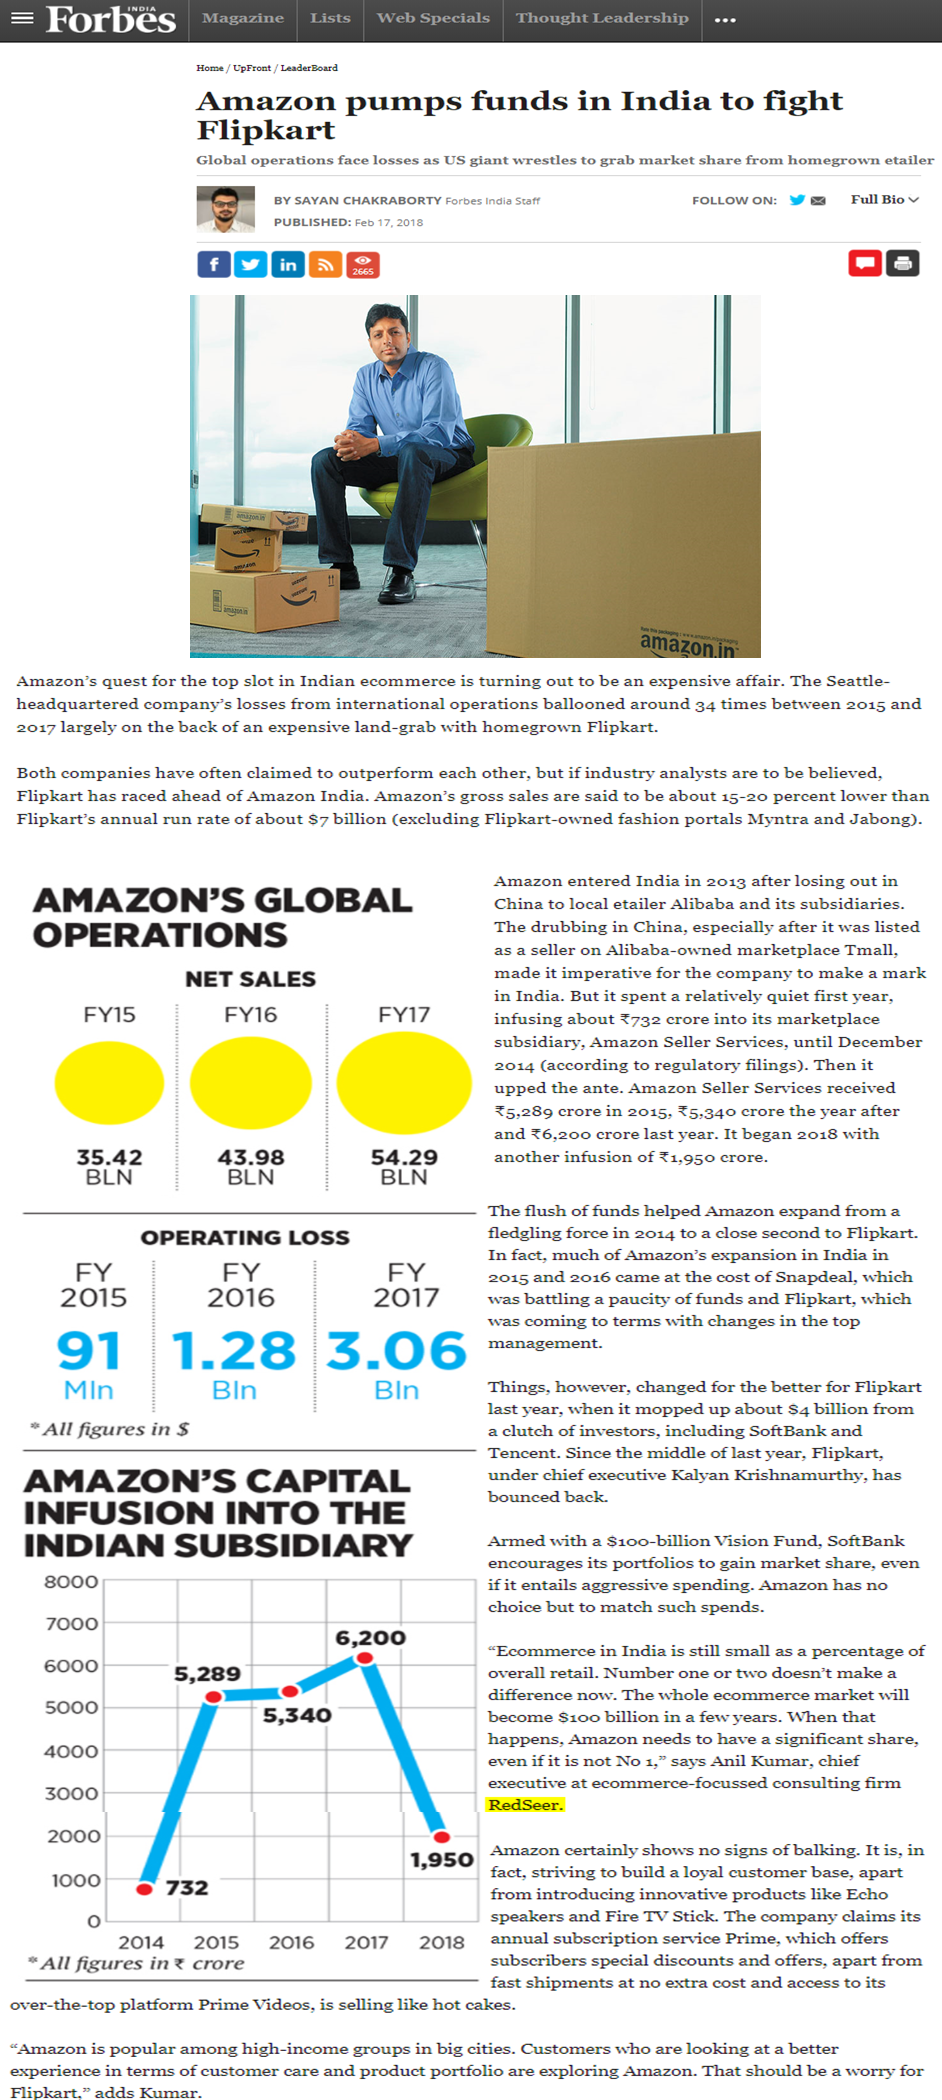 Amazon pumps funds in India to fight Flipkart